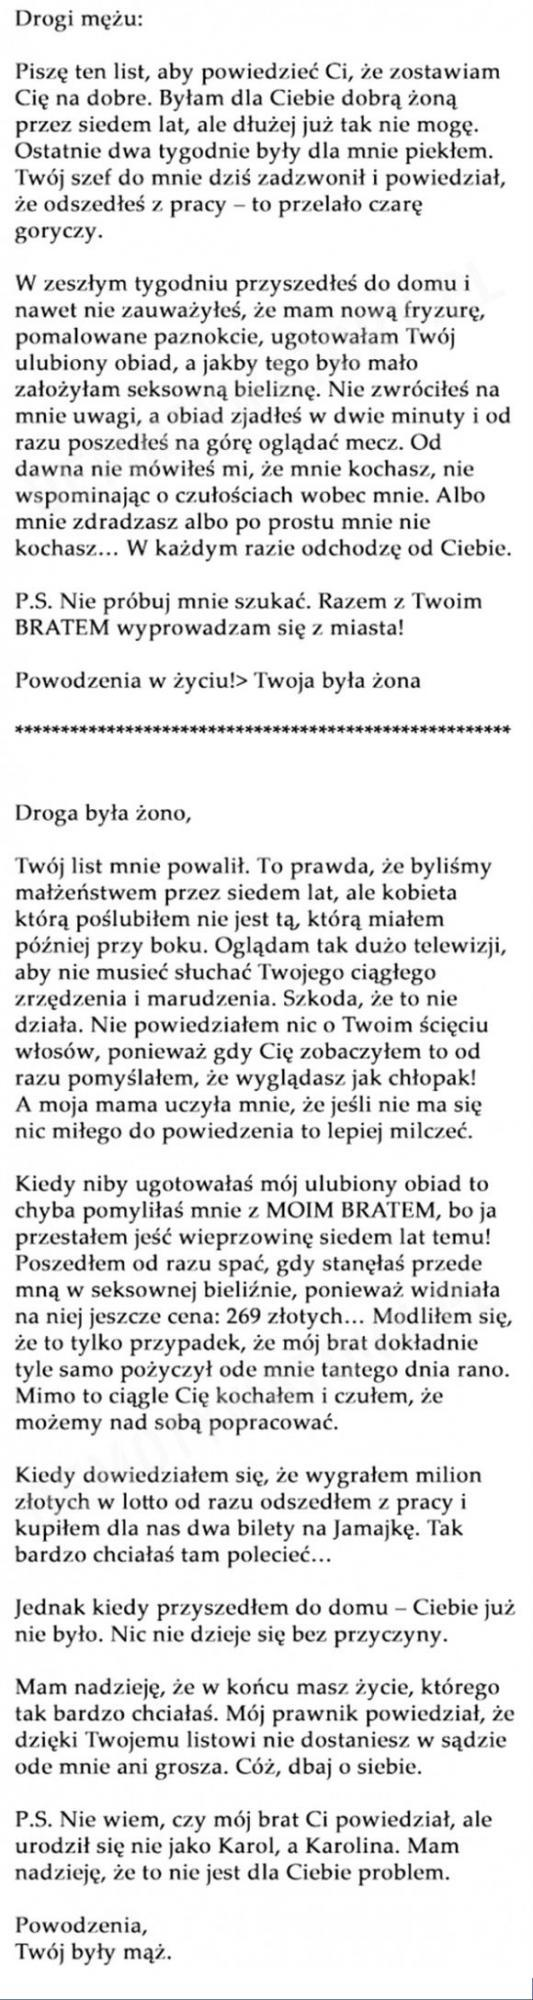 List do męża